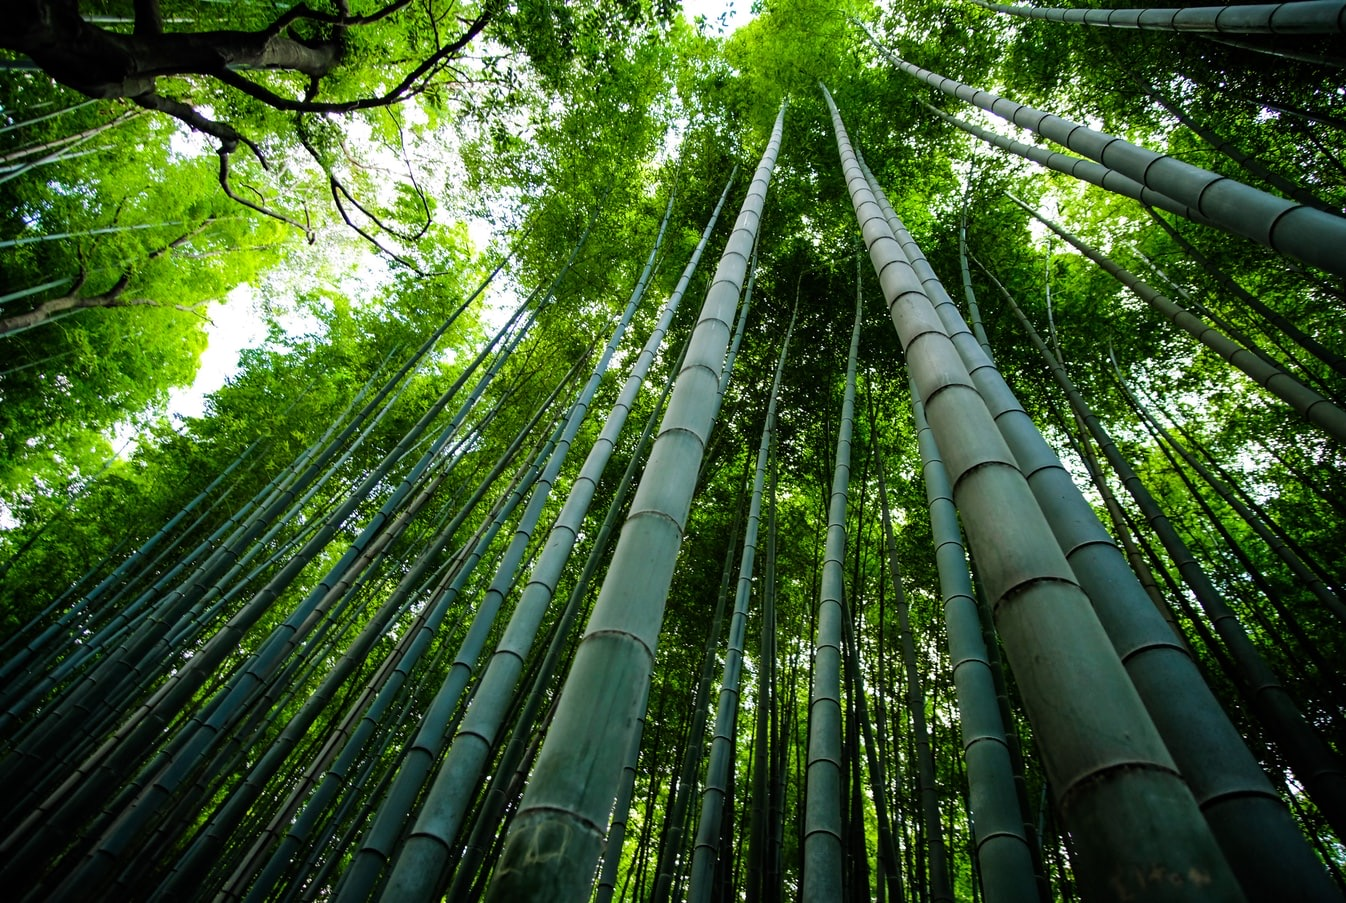 Benefits of bamboo and positives to fight climate change